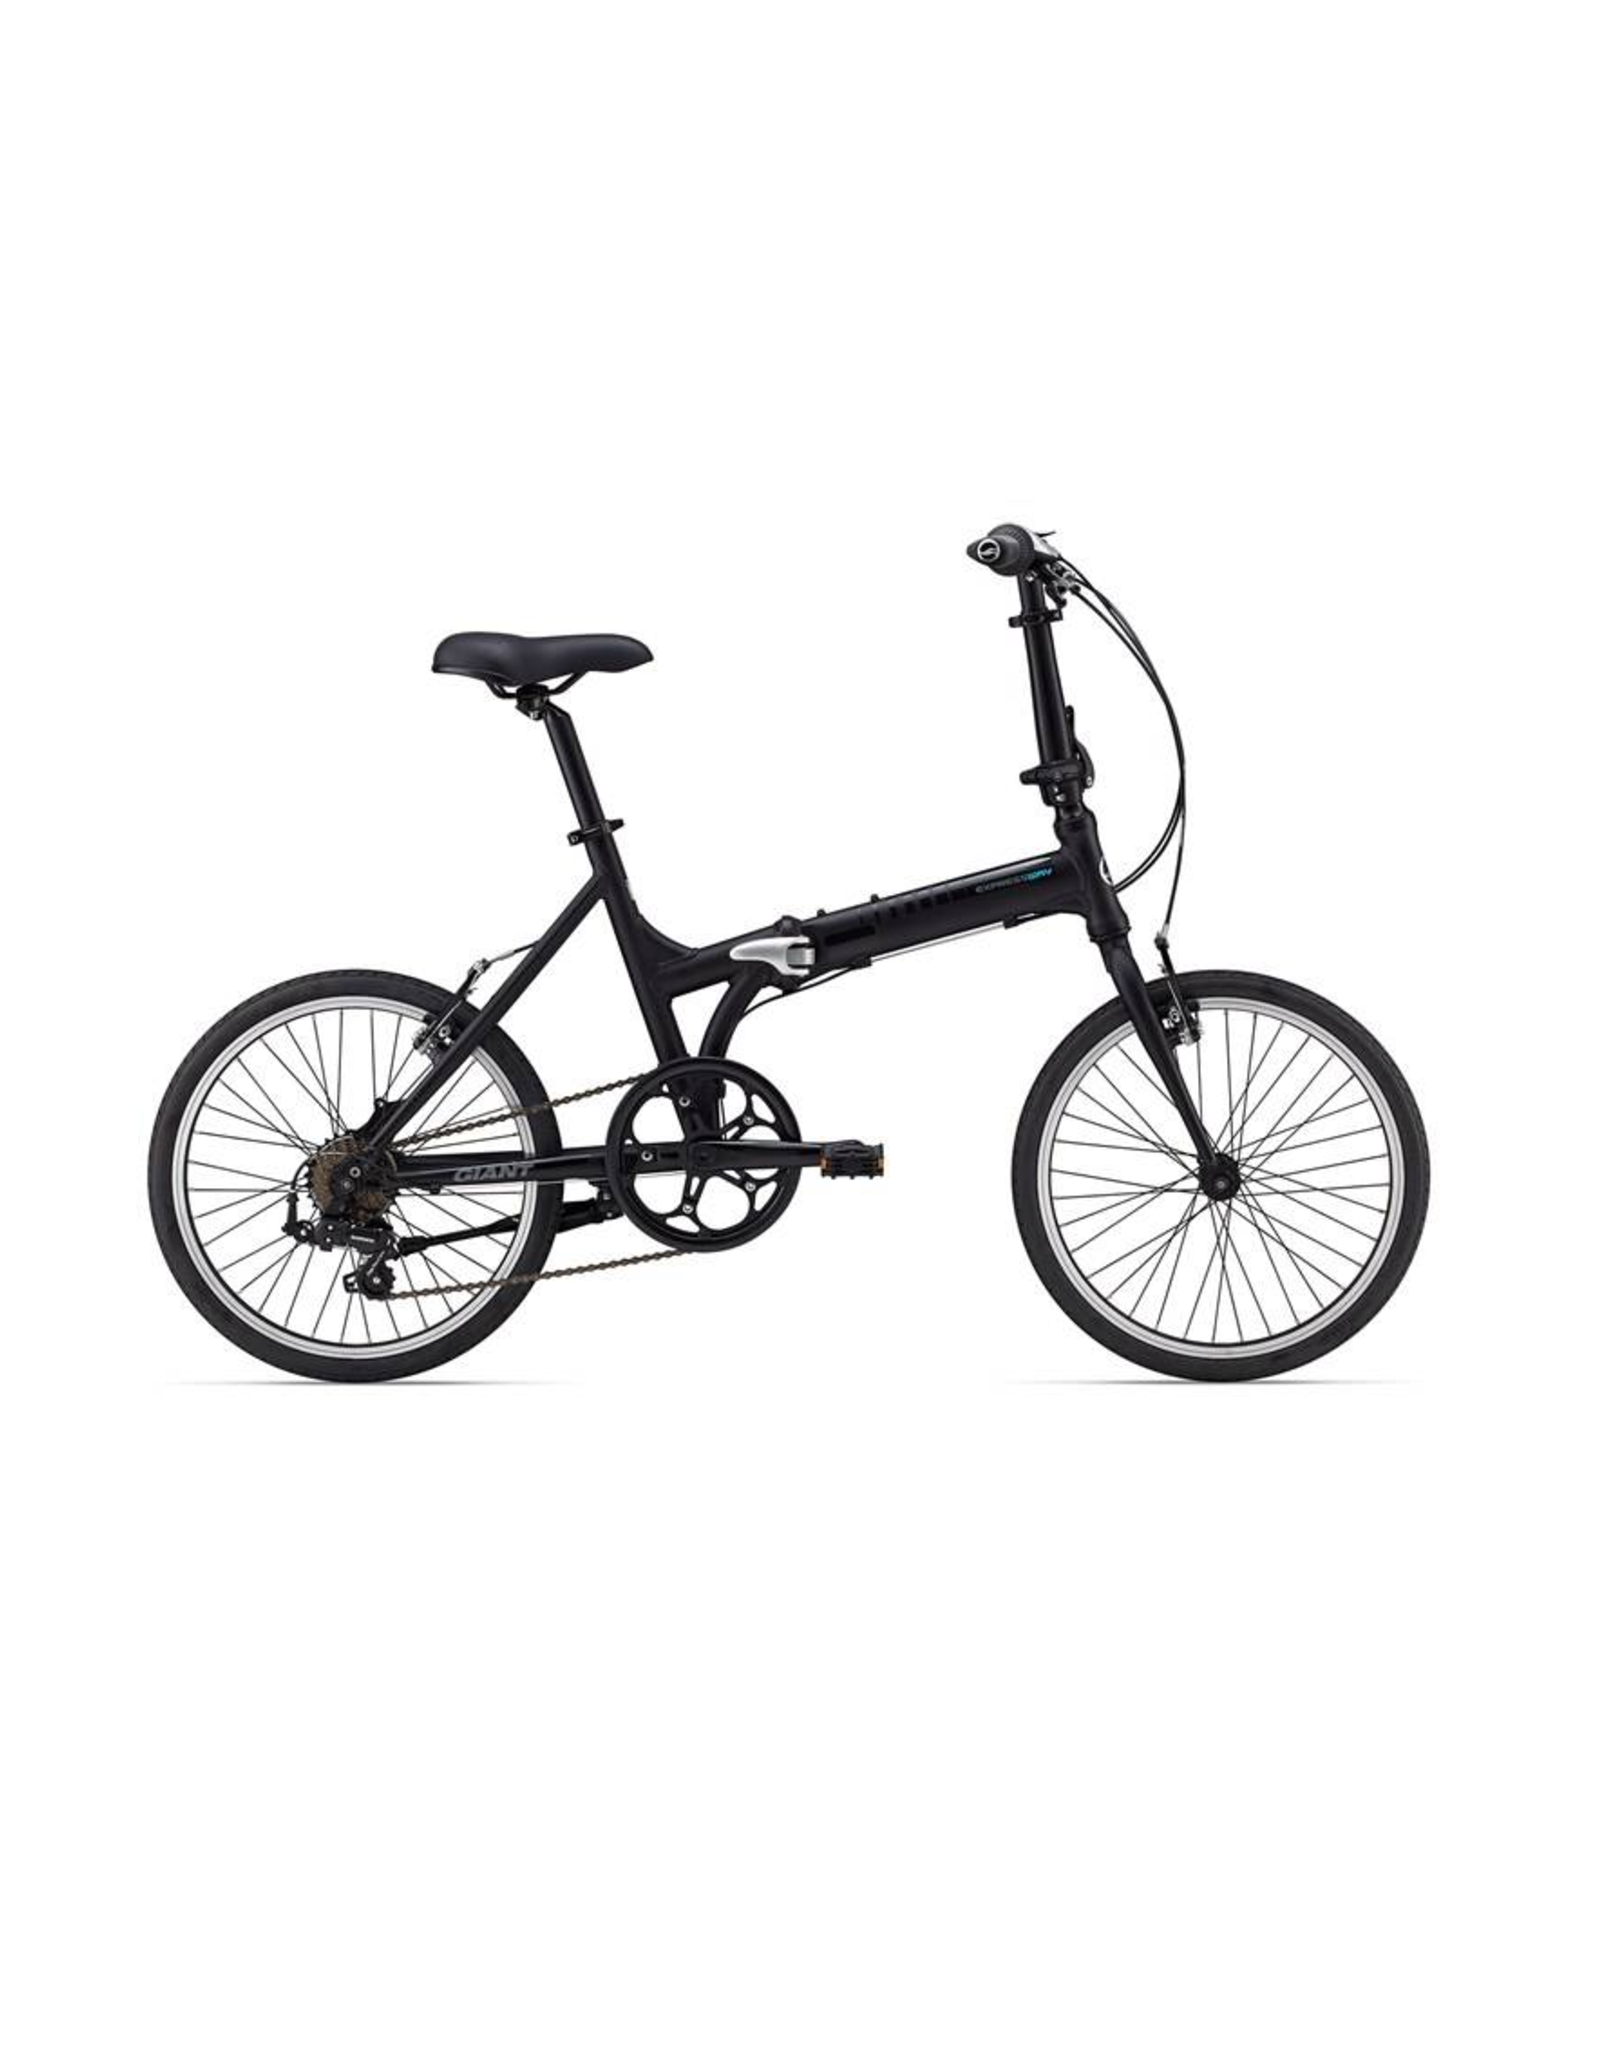 Giant ExpressWay 1 Dark Grey/Silver Folding Bicycle